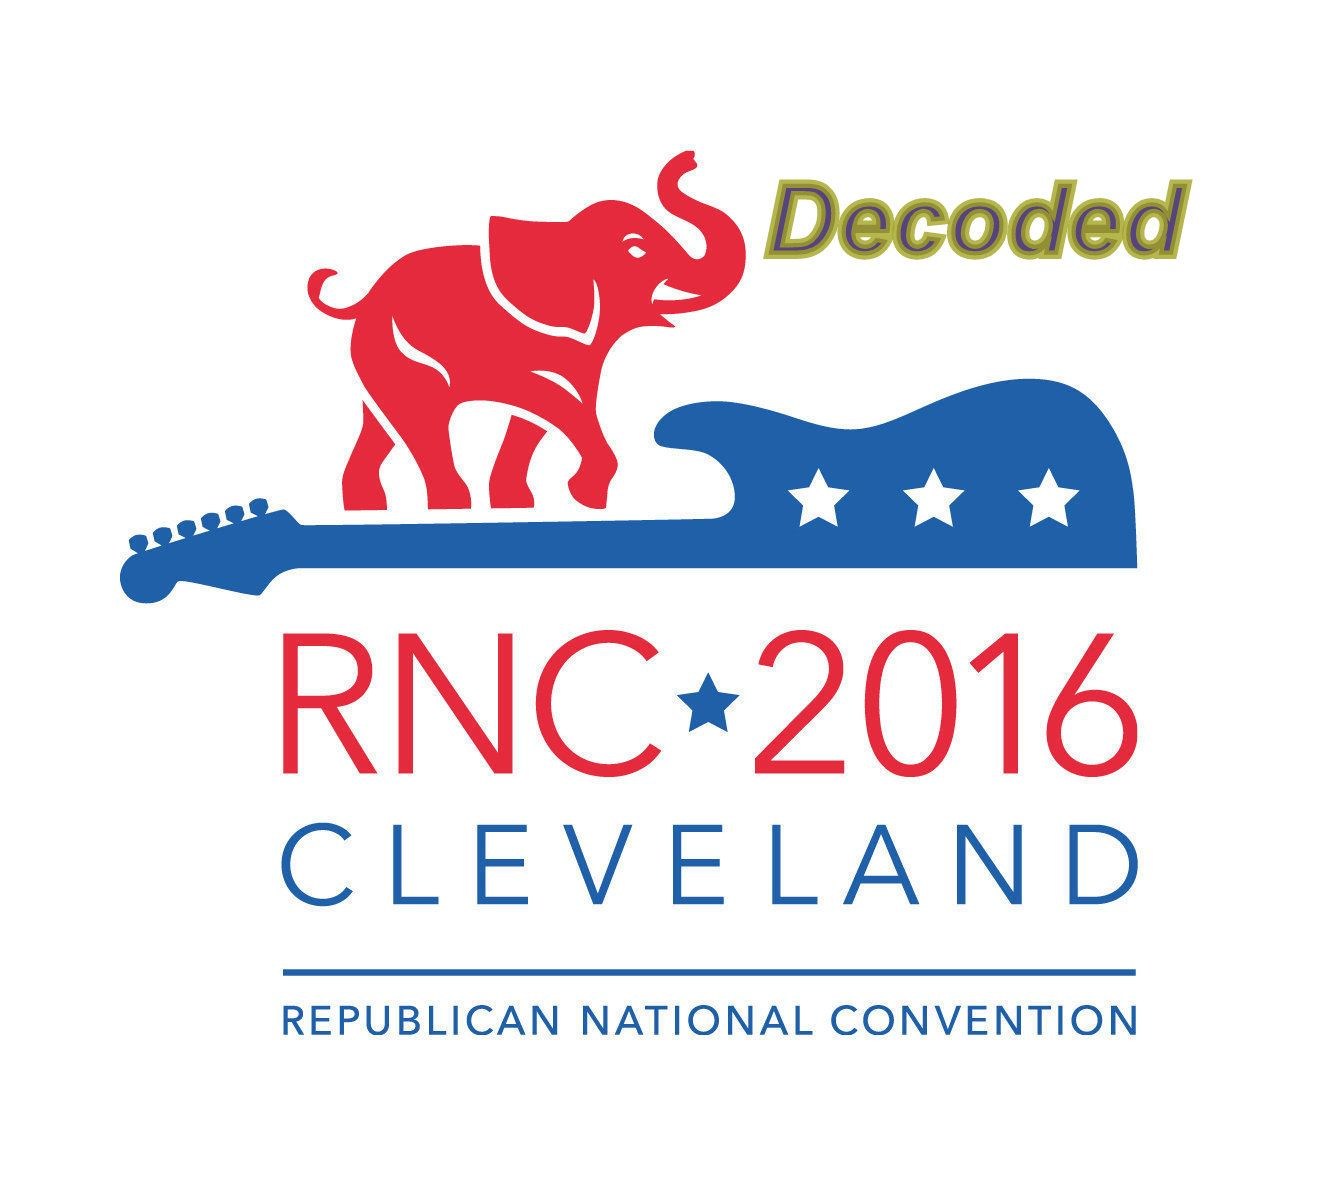 Republican National Convention Decoded